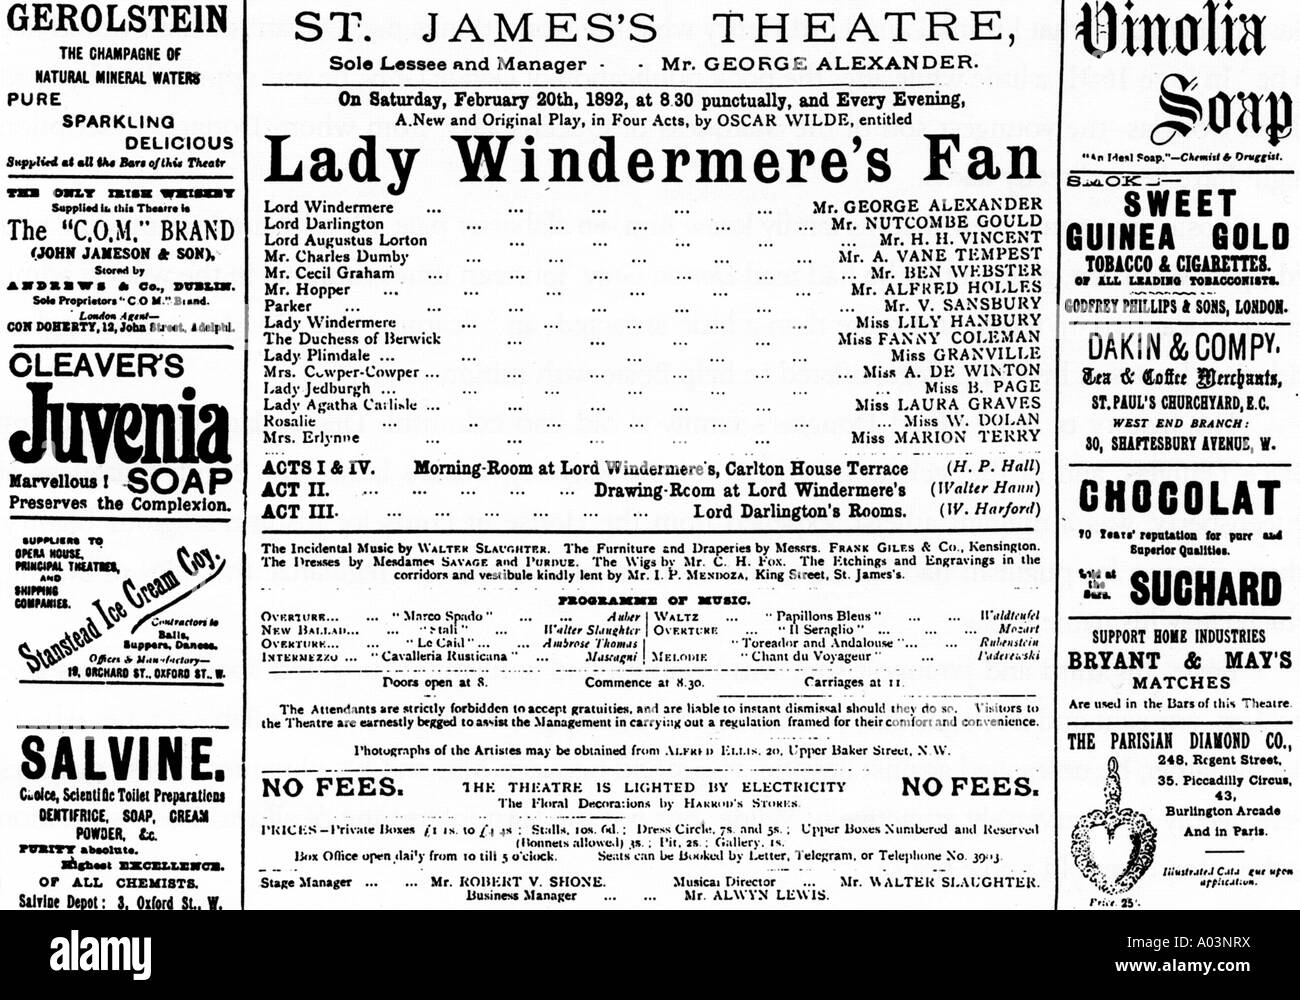 OSCAR WILDE  Advert for Lady Windermere's Fan at St James Theatre, London, which opened on 20 February 1892 - Stock Image